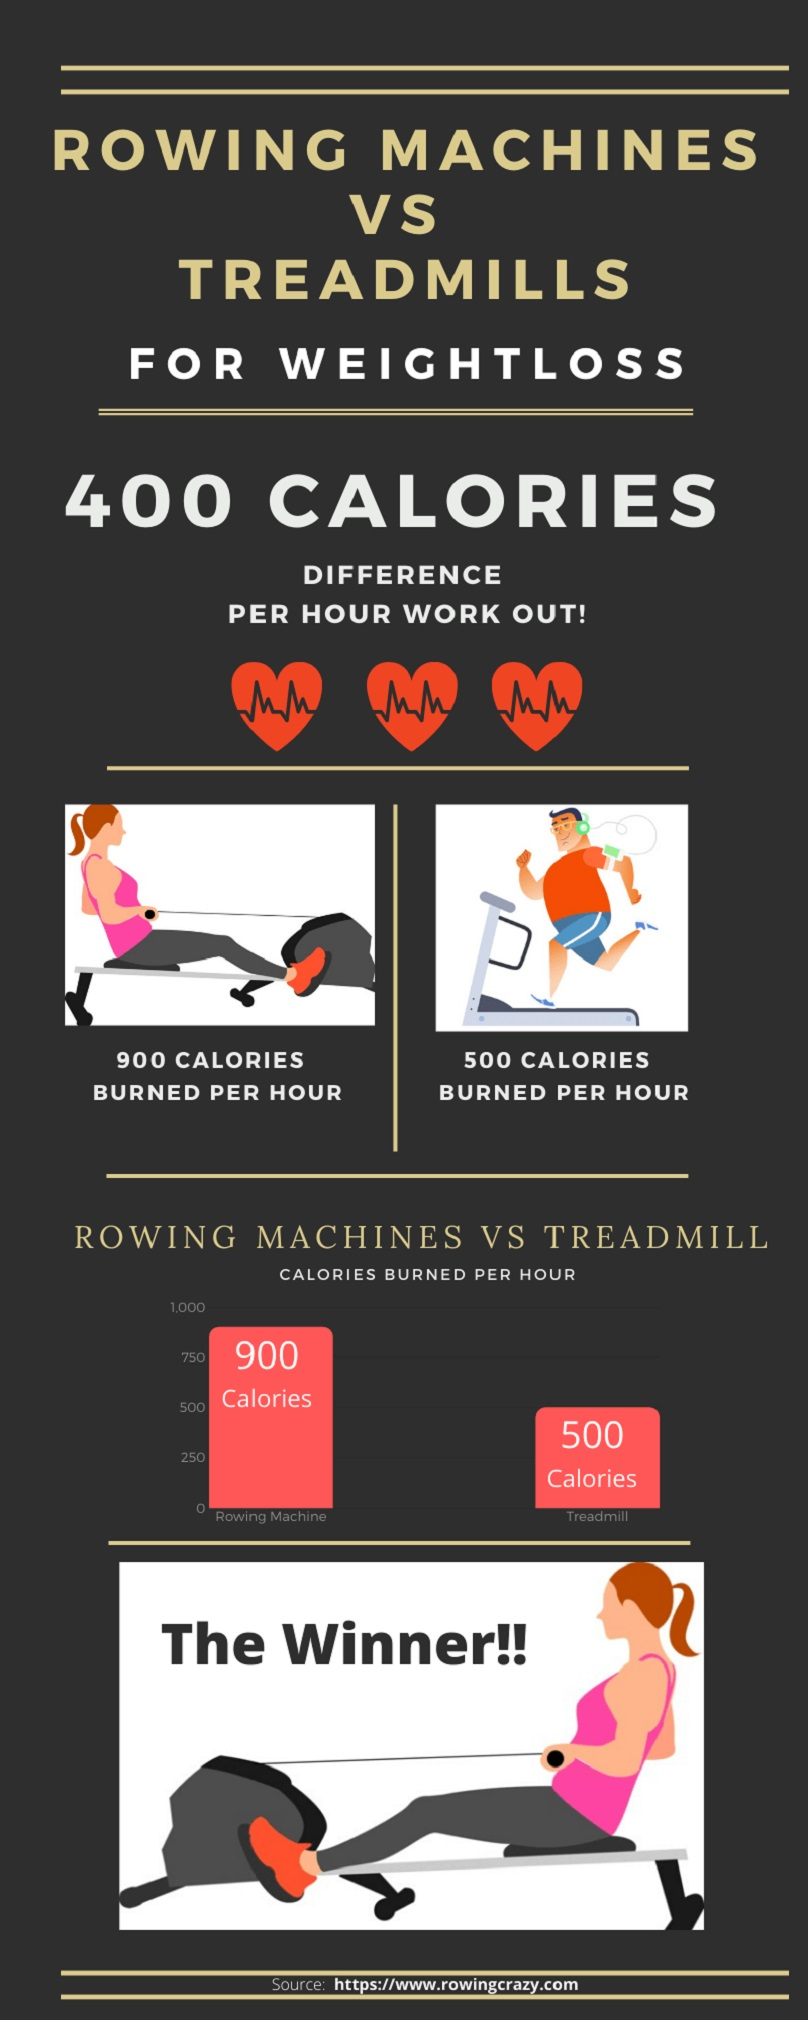 Rowing Machines VS Treadmill for Weight Loss [Infographic]